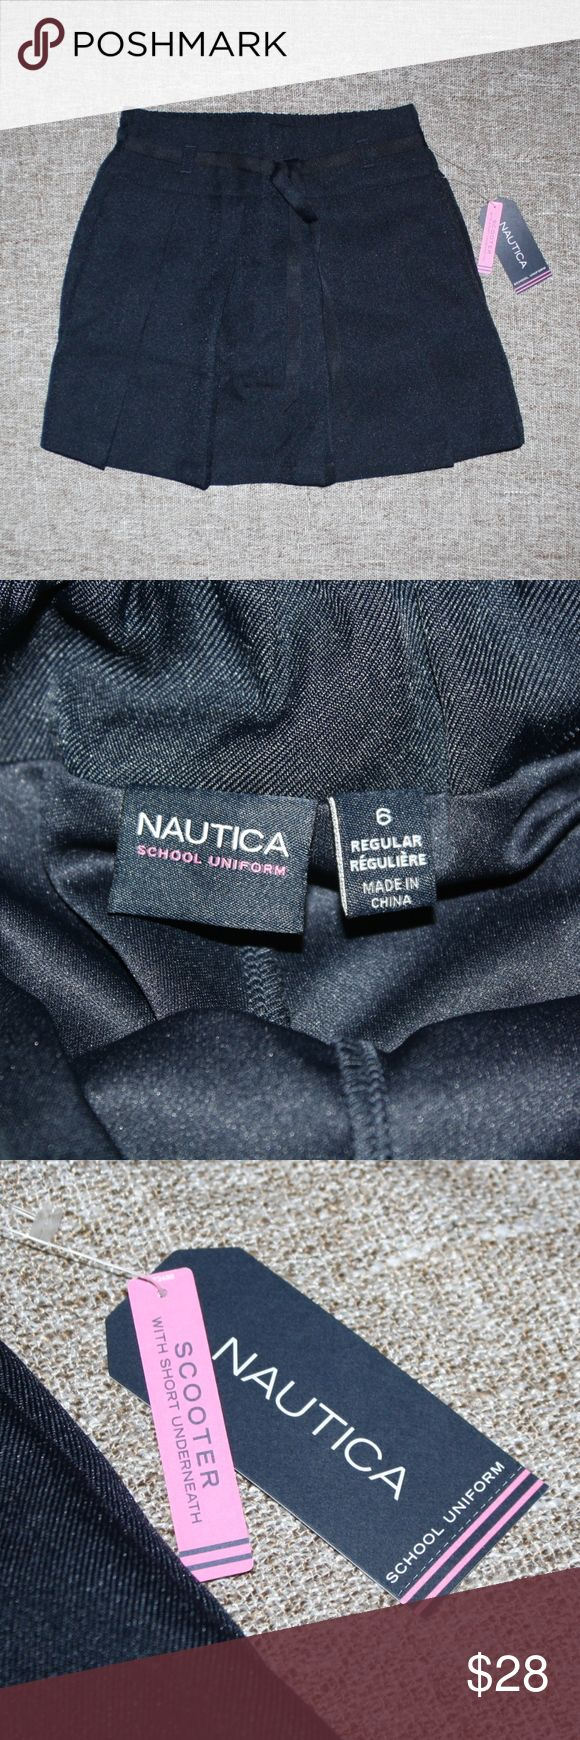 NEW! NAUTICA DARK BLUE SCOOTER SKIRT! NAUTICA SCOOTER SKIRT!  New With Tags  Retails: $28.00  Size: Girls 6  Details: -Stylish young girls skort style skirt! -School approved clothing! -Dark blue polyester material. -Elastic waistband for a good fit. -Pleated front. -Shorts attached underneath. -Waist measures approx. 11 inches across. -Waist to hem measures approx. 12.5 inches. -Inseam measures approx. 2 inches long.  *ALL ITEMS COME FROM A SMOKE-FREE & PET-FREE HOUSEHOLD!* Nautica Bottoms…